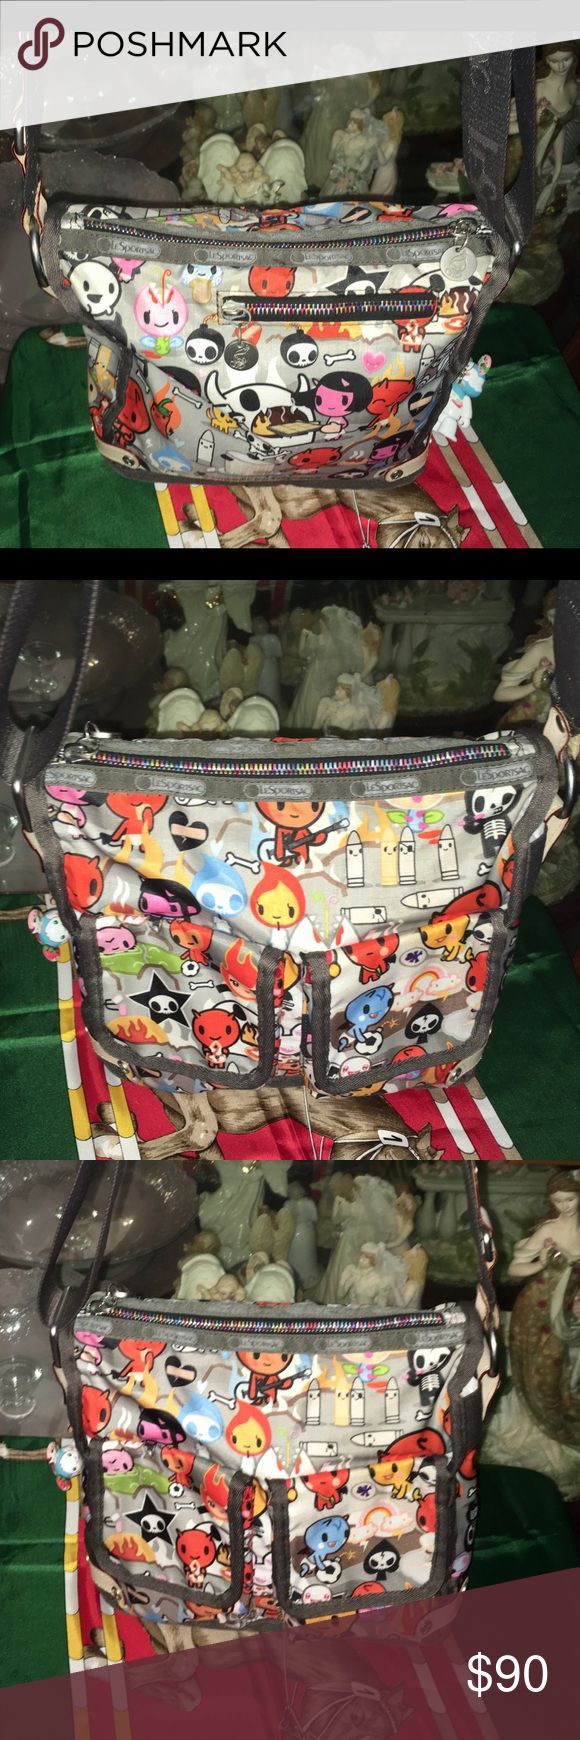 Lesportsac Tokidoki Inferno Crossbody Bag Here is a Lesportsac Tokidoki Inferno Crossbody Bag. It is in like new condition. It is 10 inches wide and 9 inches tall Tokidoki Bags Crossbody Bags